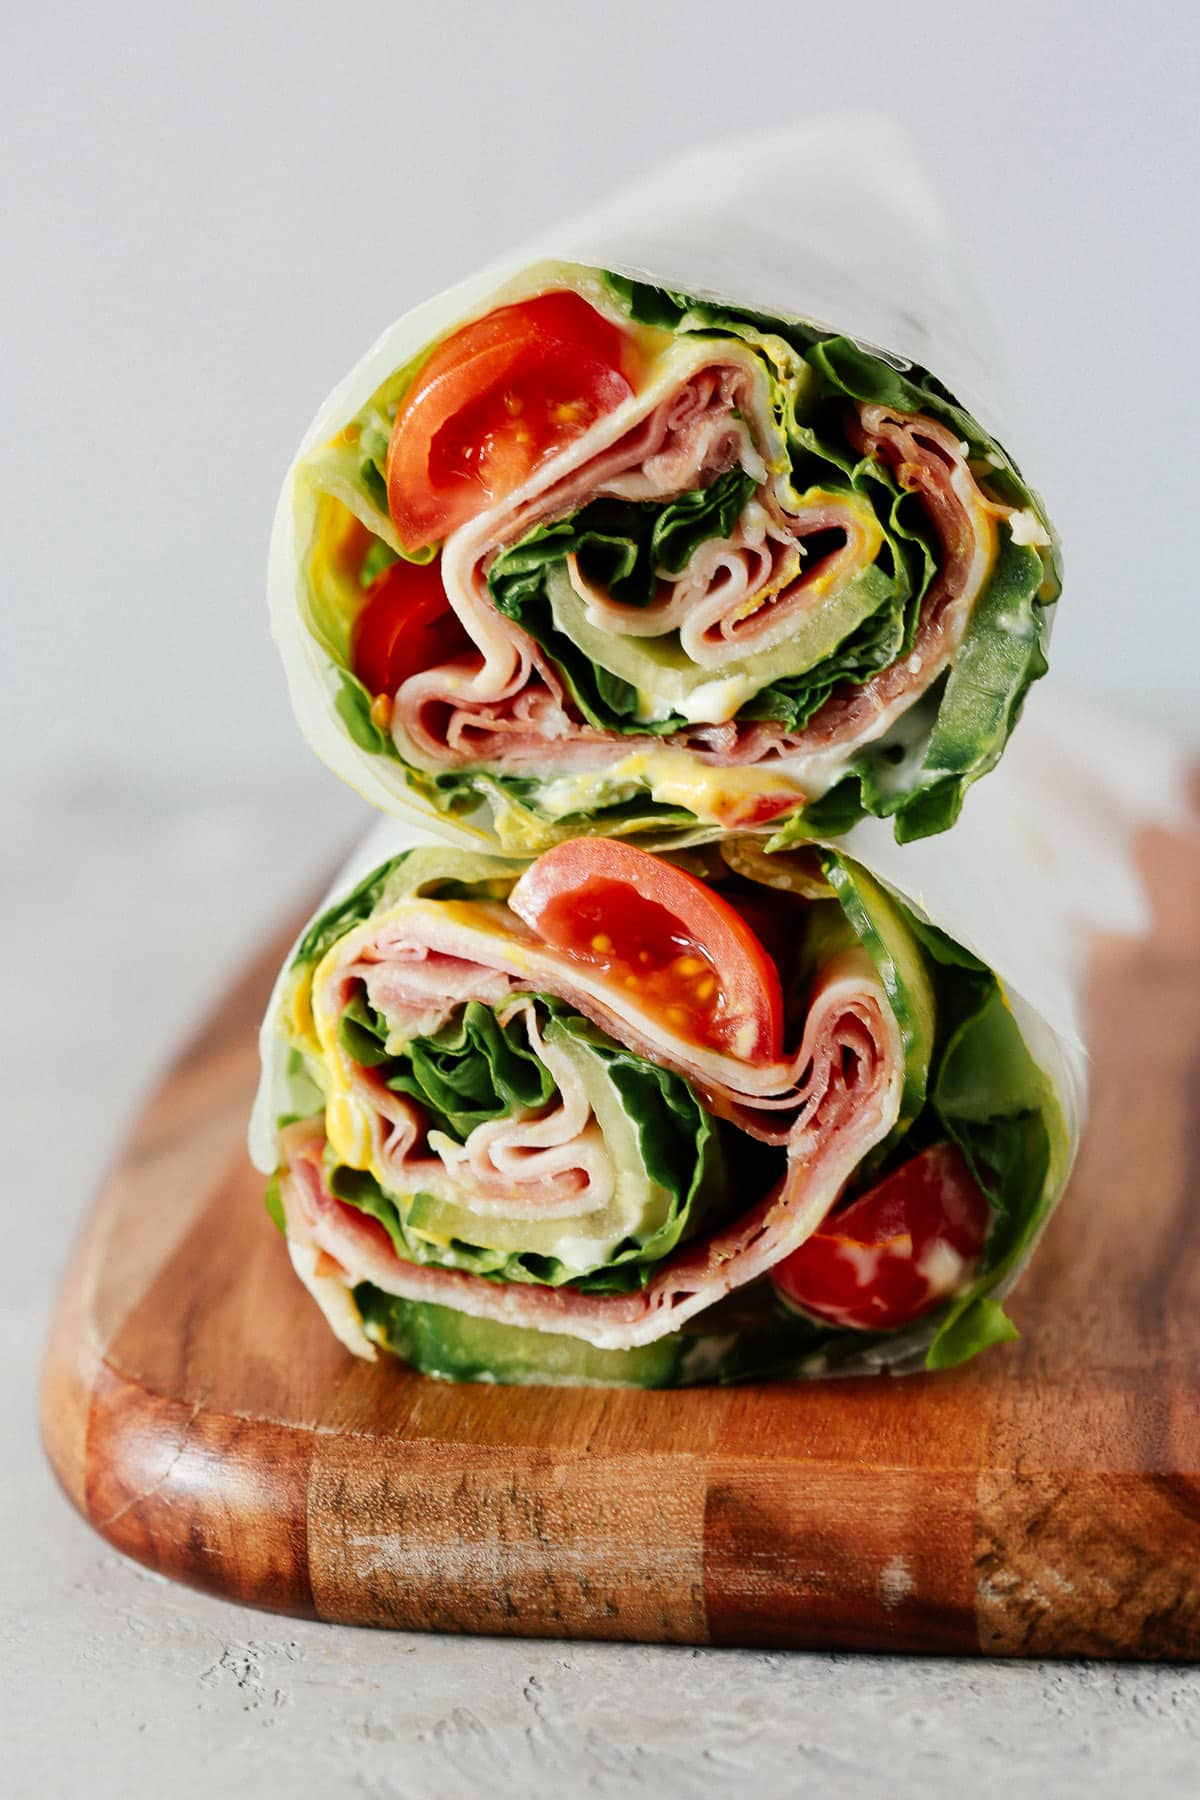 Lowcarb Lettuce Wrap Sandwich Easy to Make and Healthy